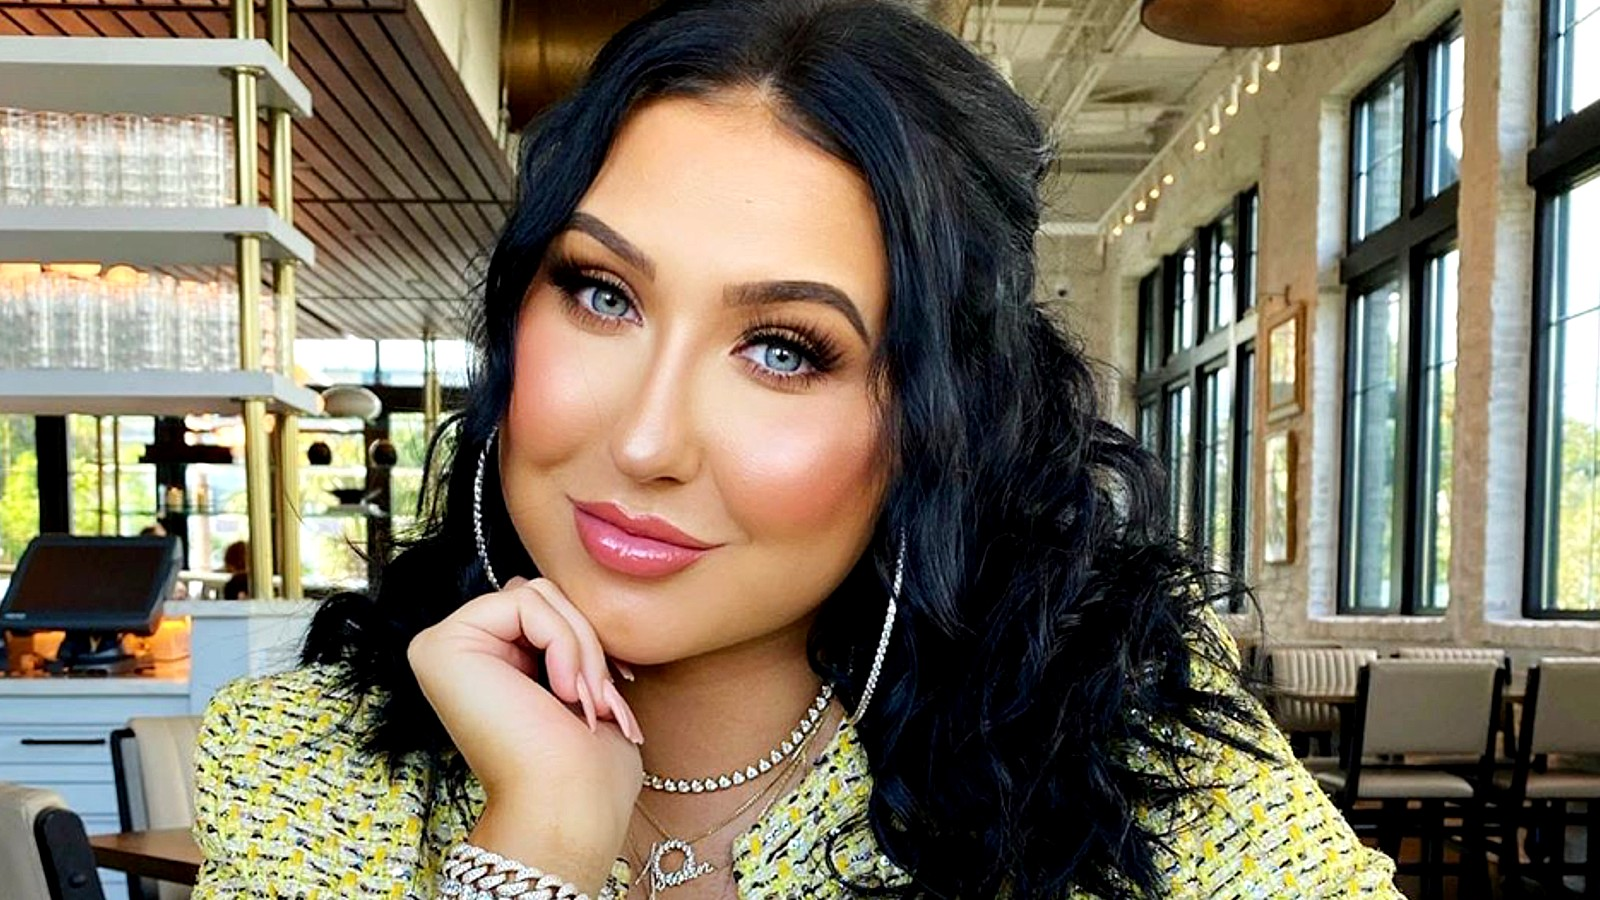 Jaclyn Hill poses with her head on her hand sitting down